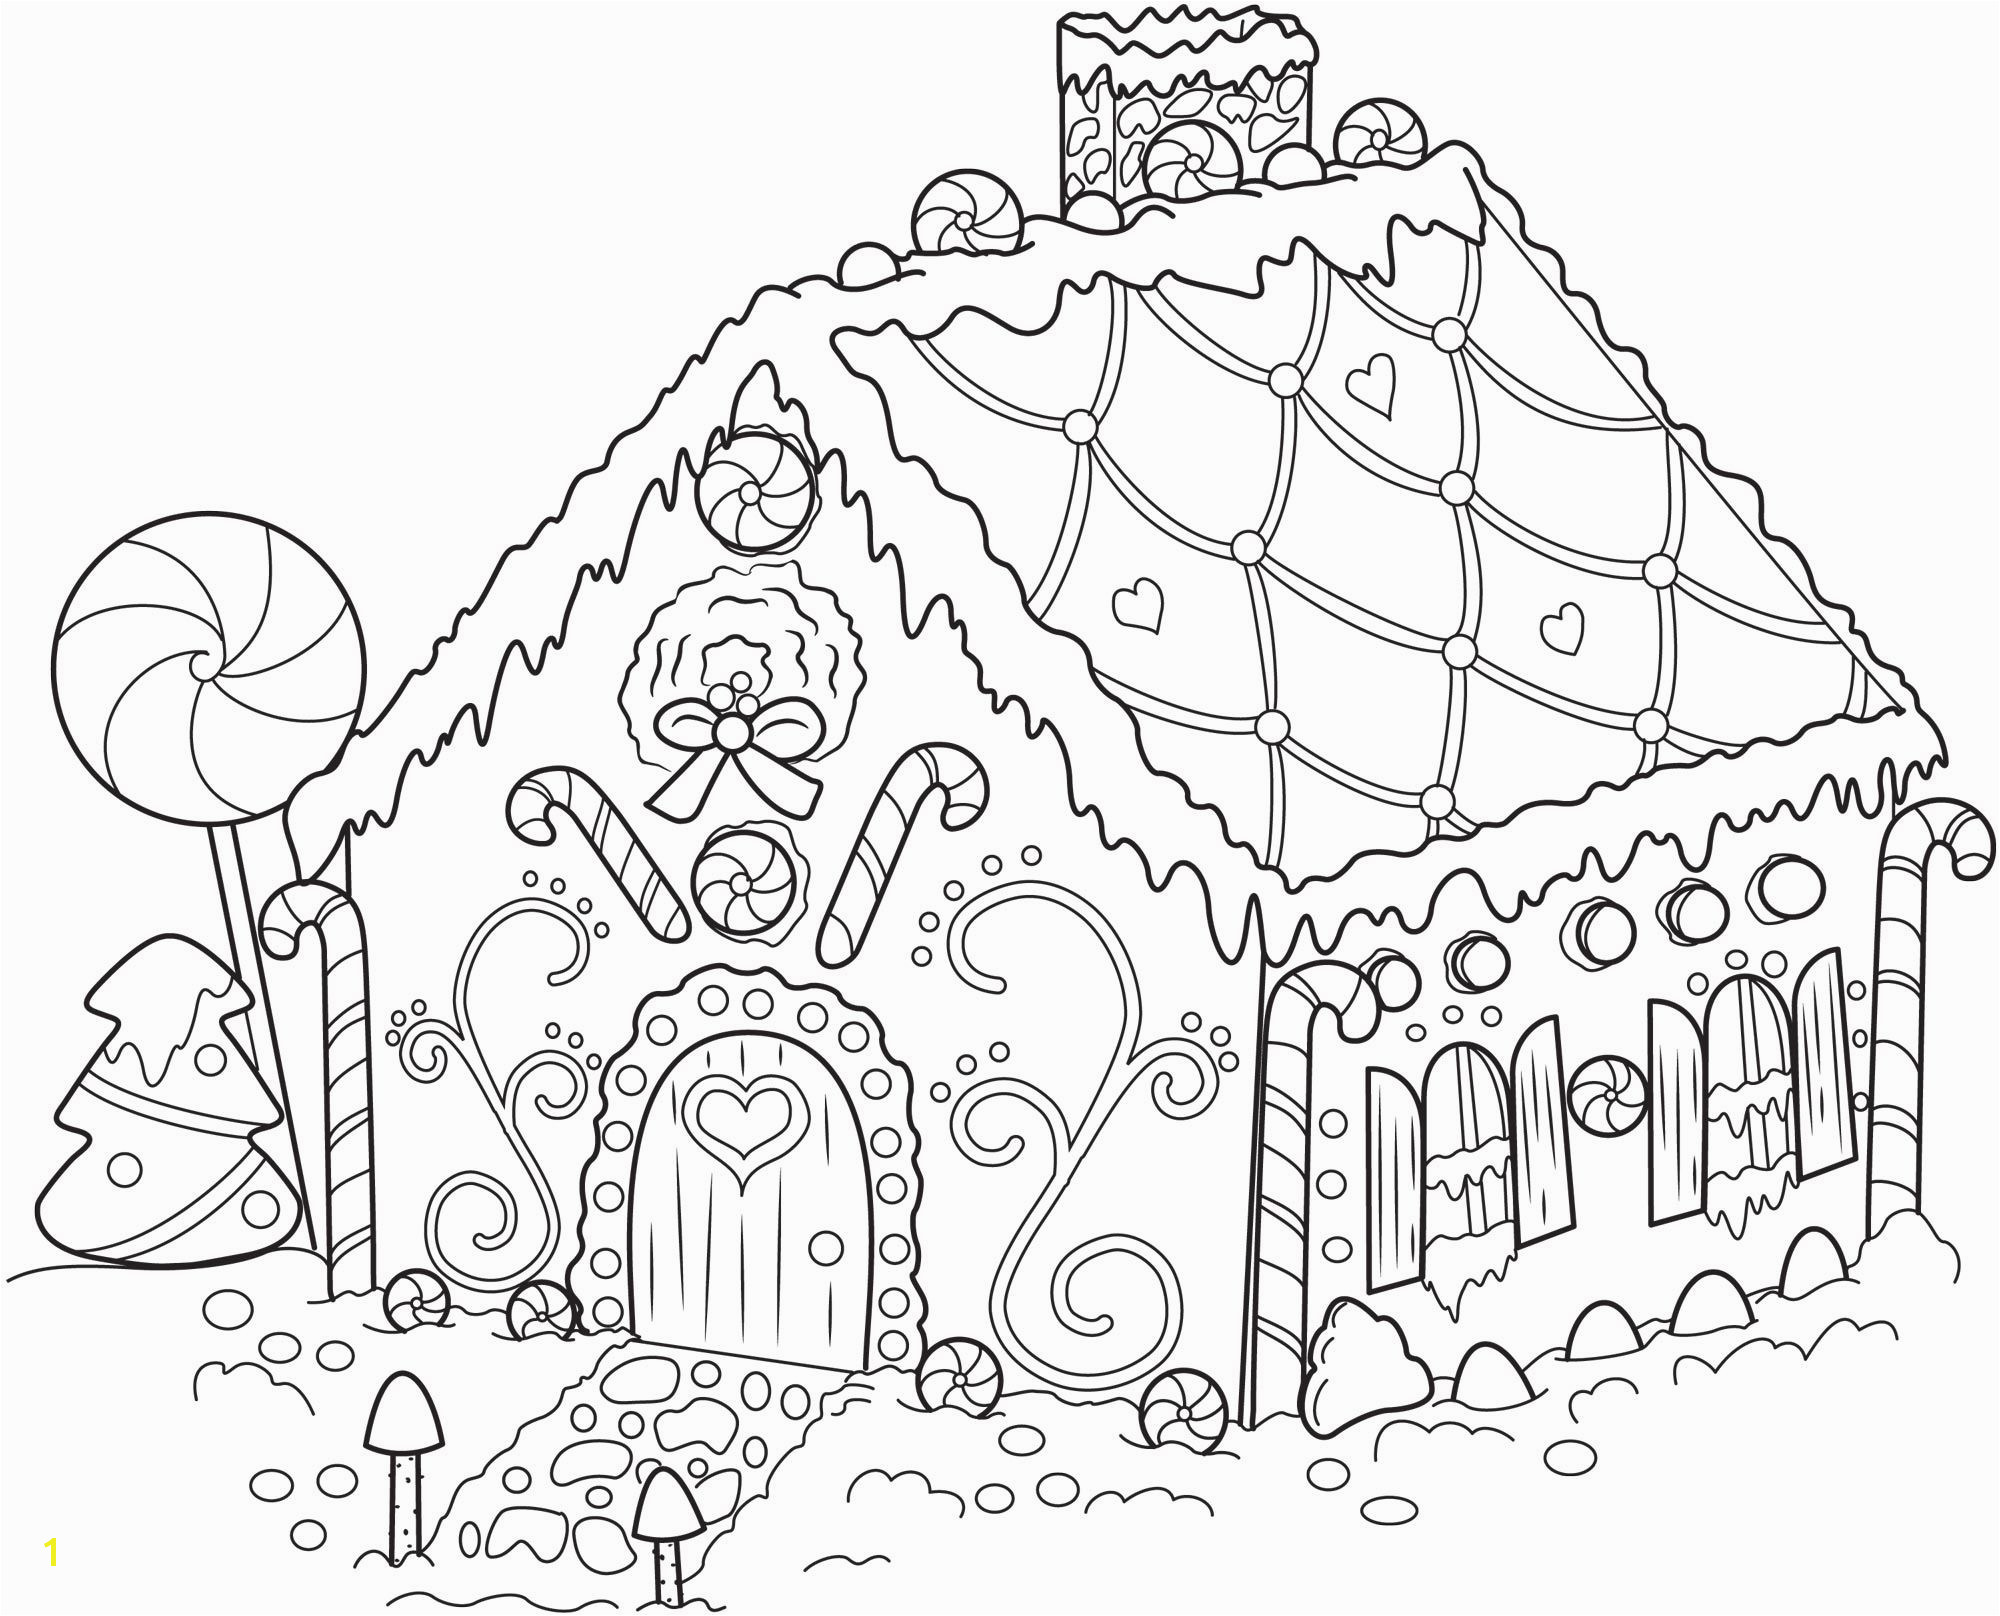 Hansel and Gretel Candy House Coloring Page Free Gingerbread Man Fairy Tale Coloring Pages Coloring Pages